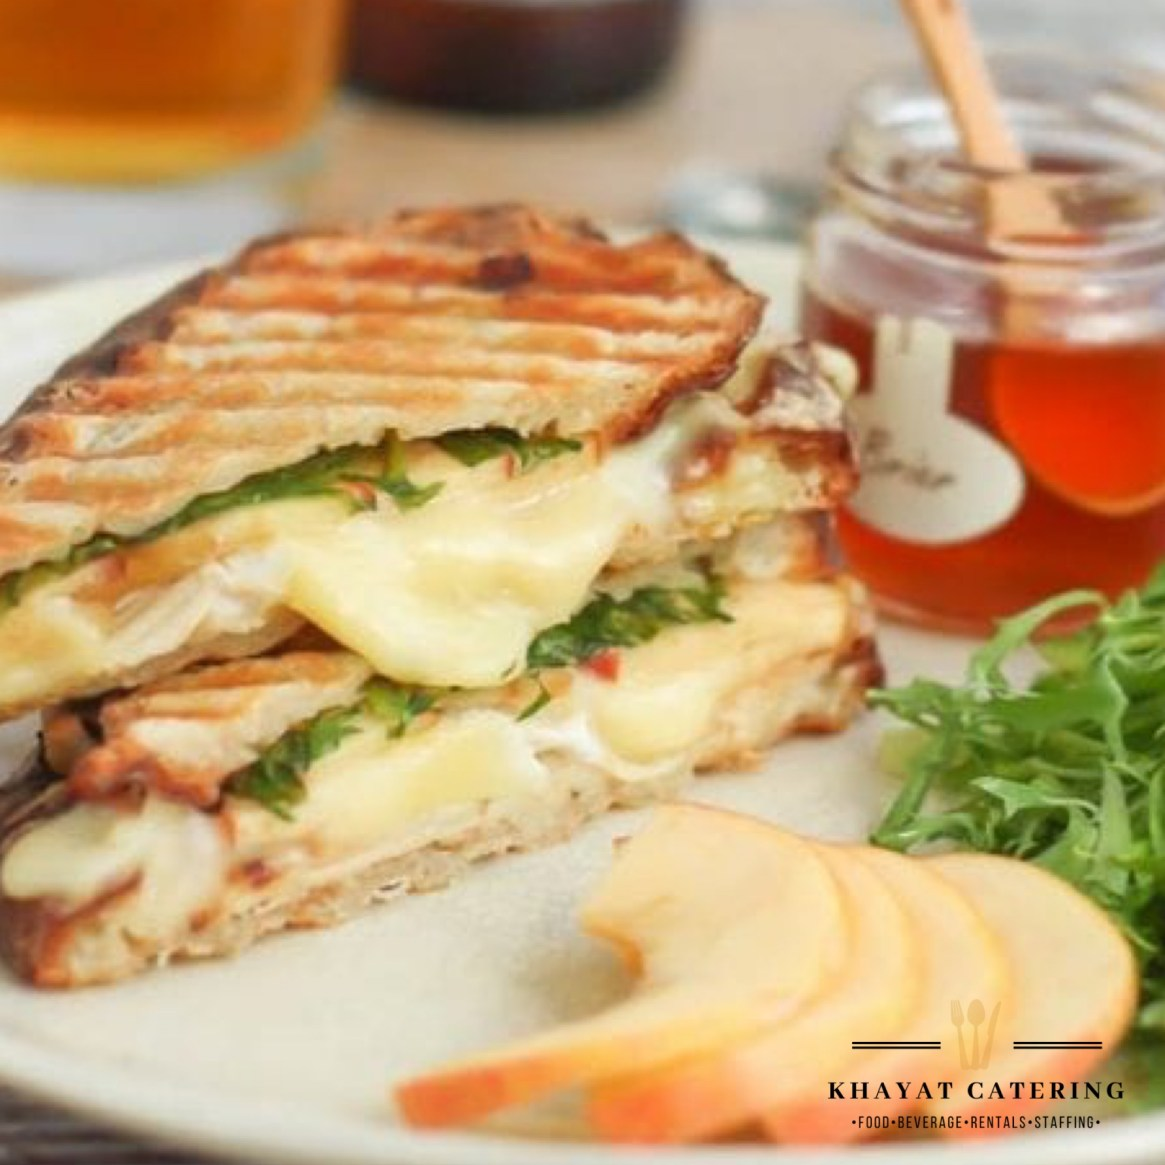 Khayat Catering Apple chicken panini